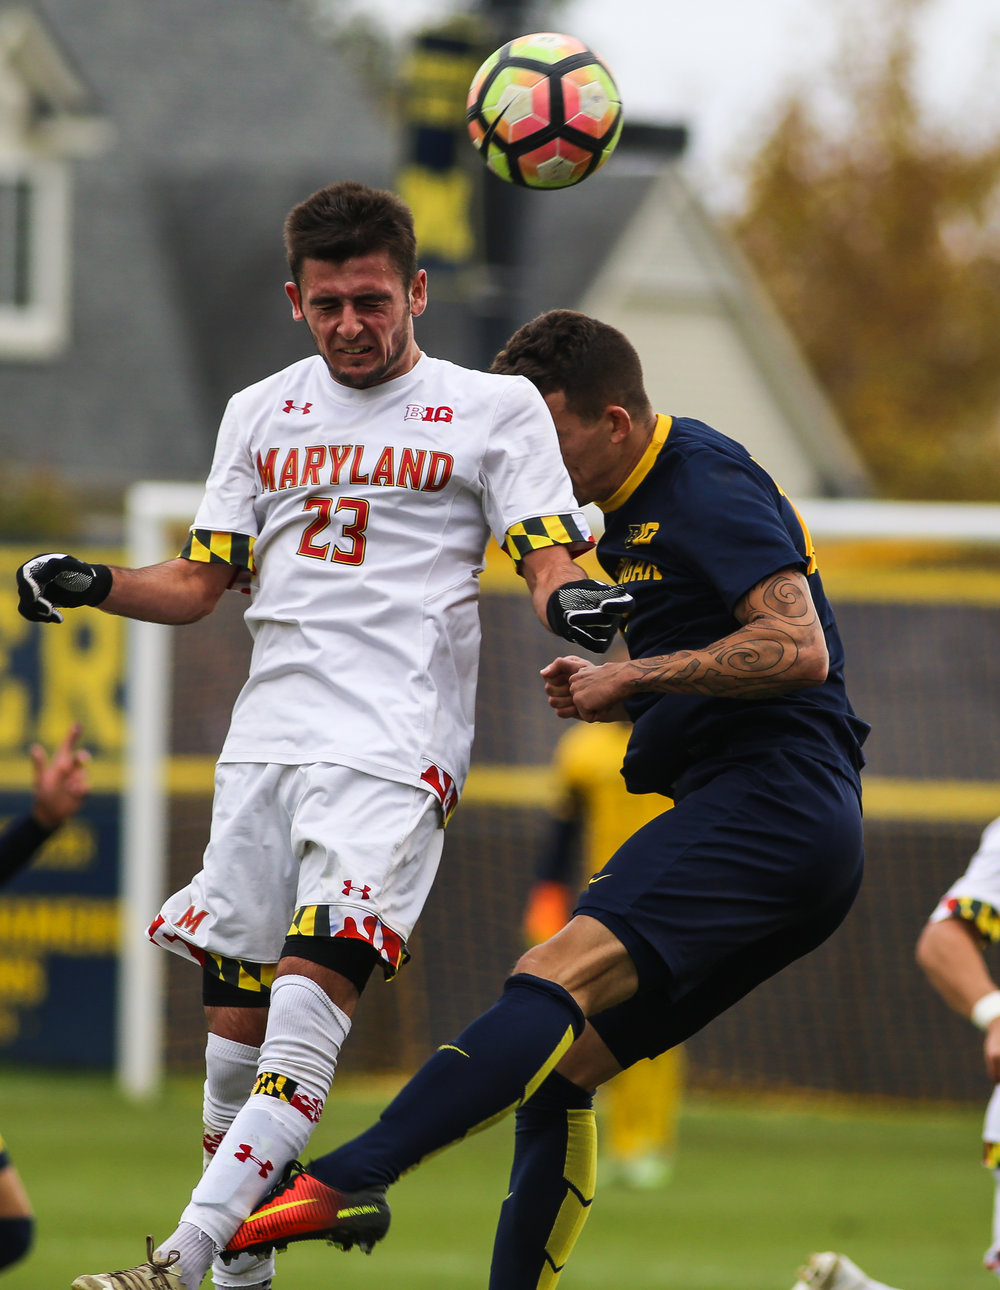 20161029-Michigan (M) vs. Maryland50.jpg